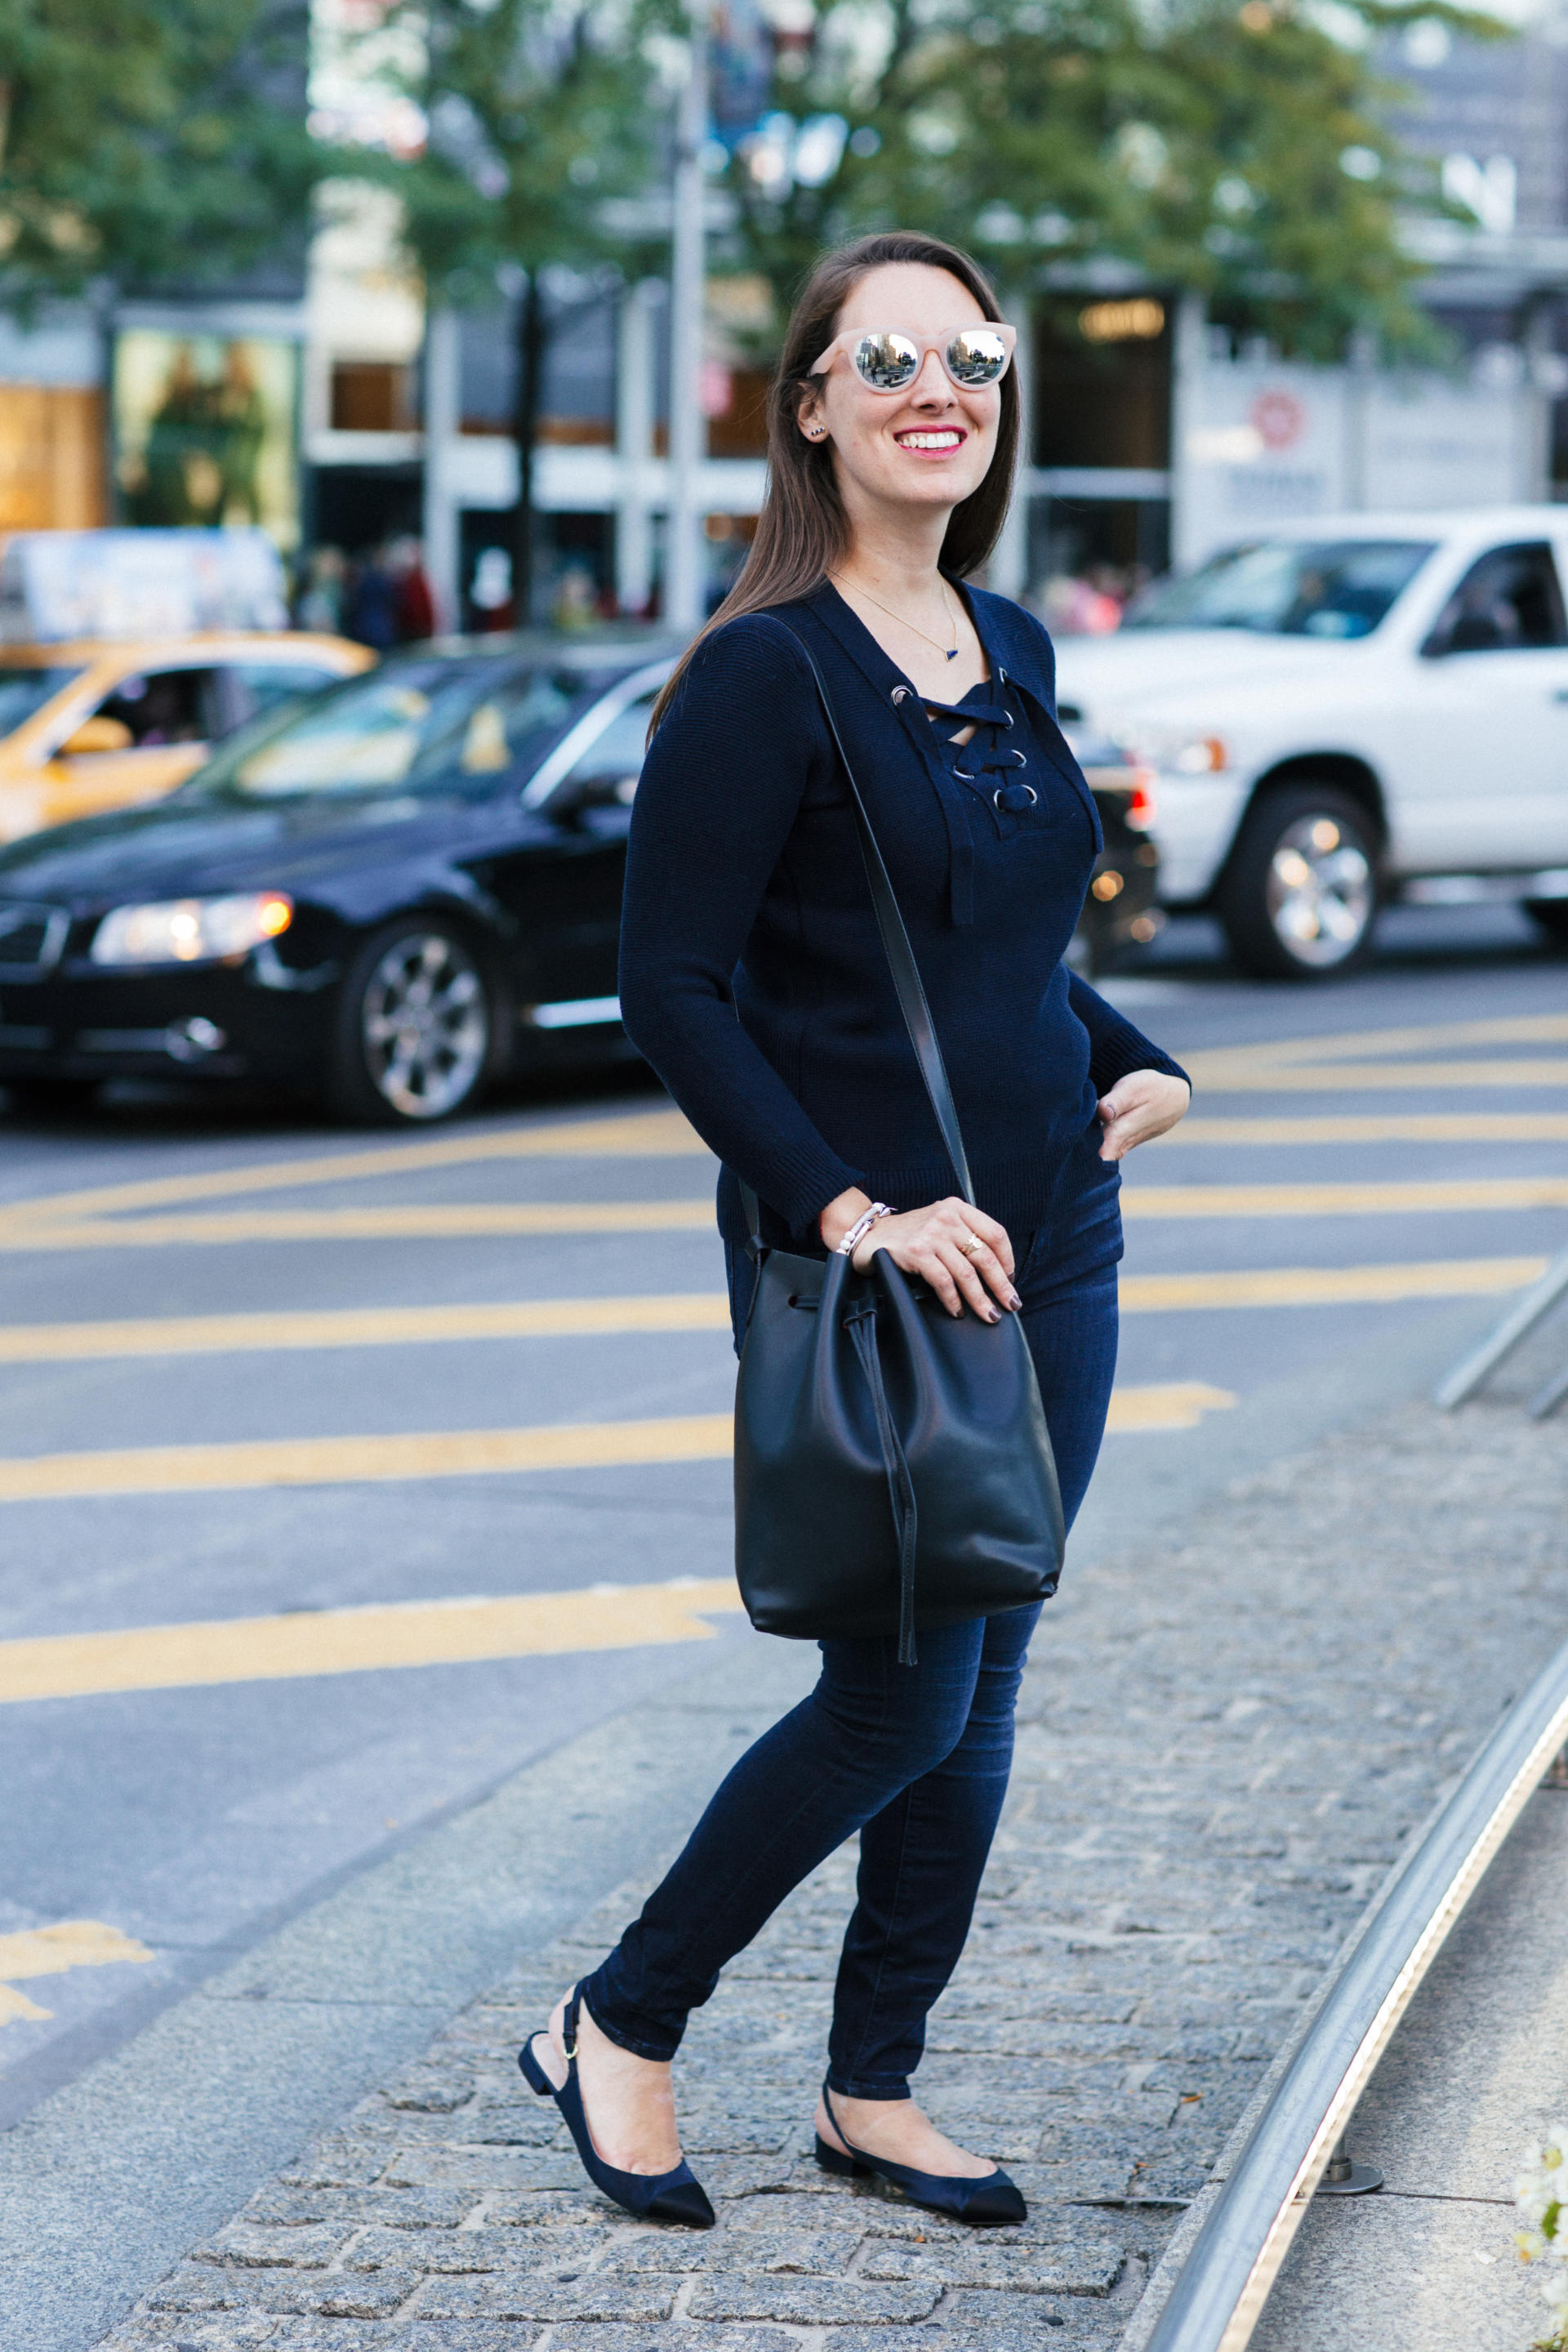 STYLE: Black and Blue with Zaful